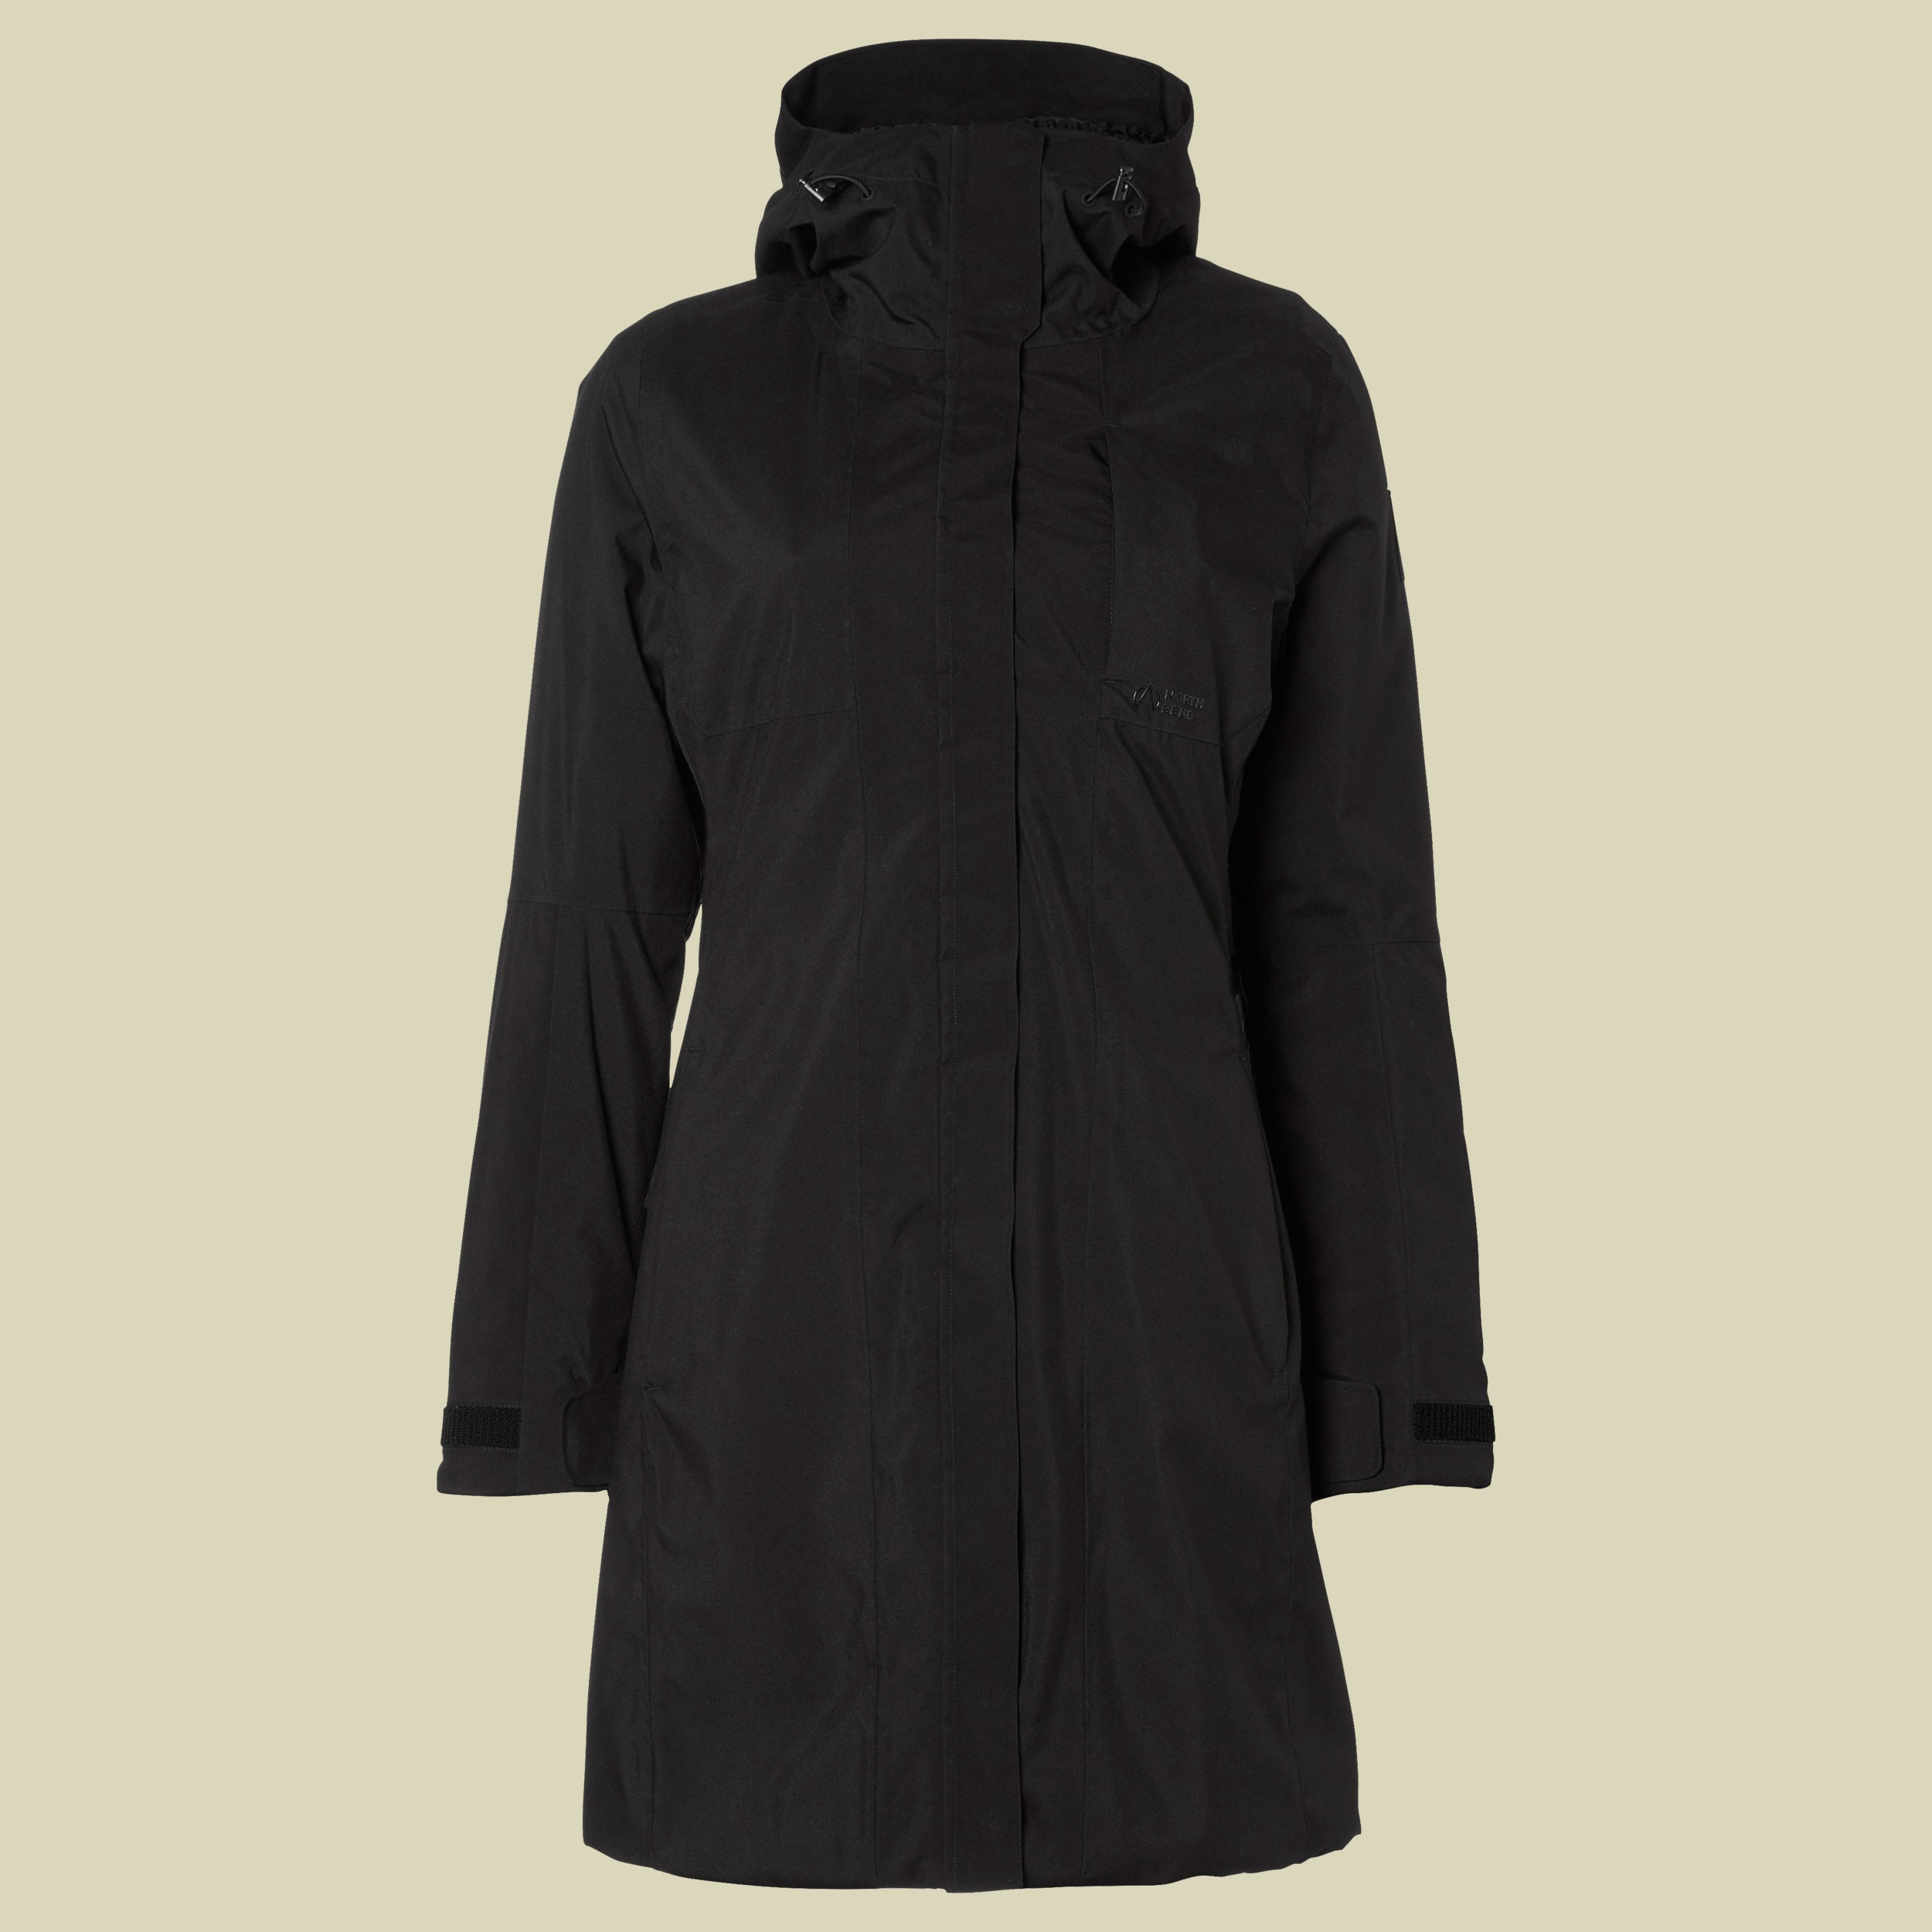 Tech Jacket Women